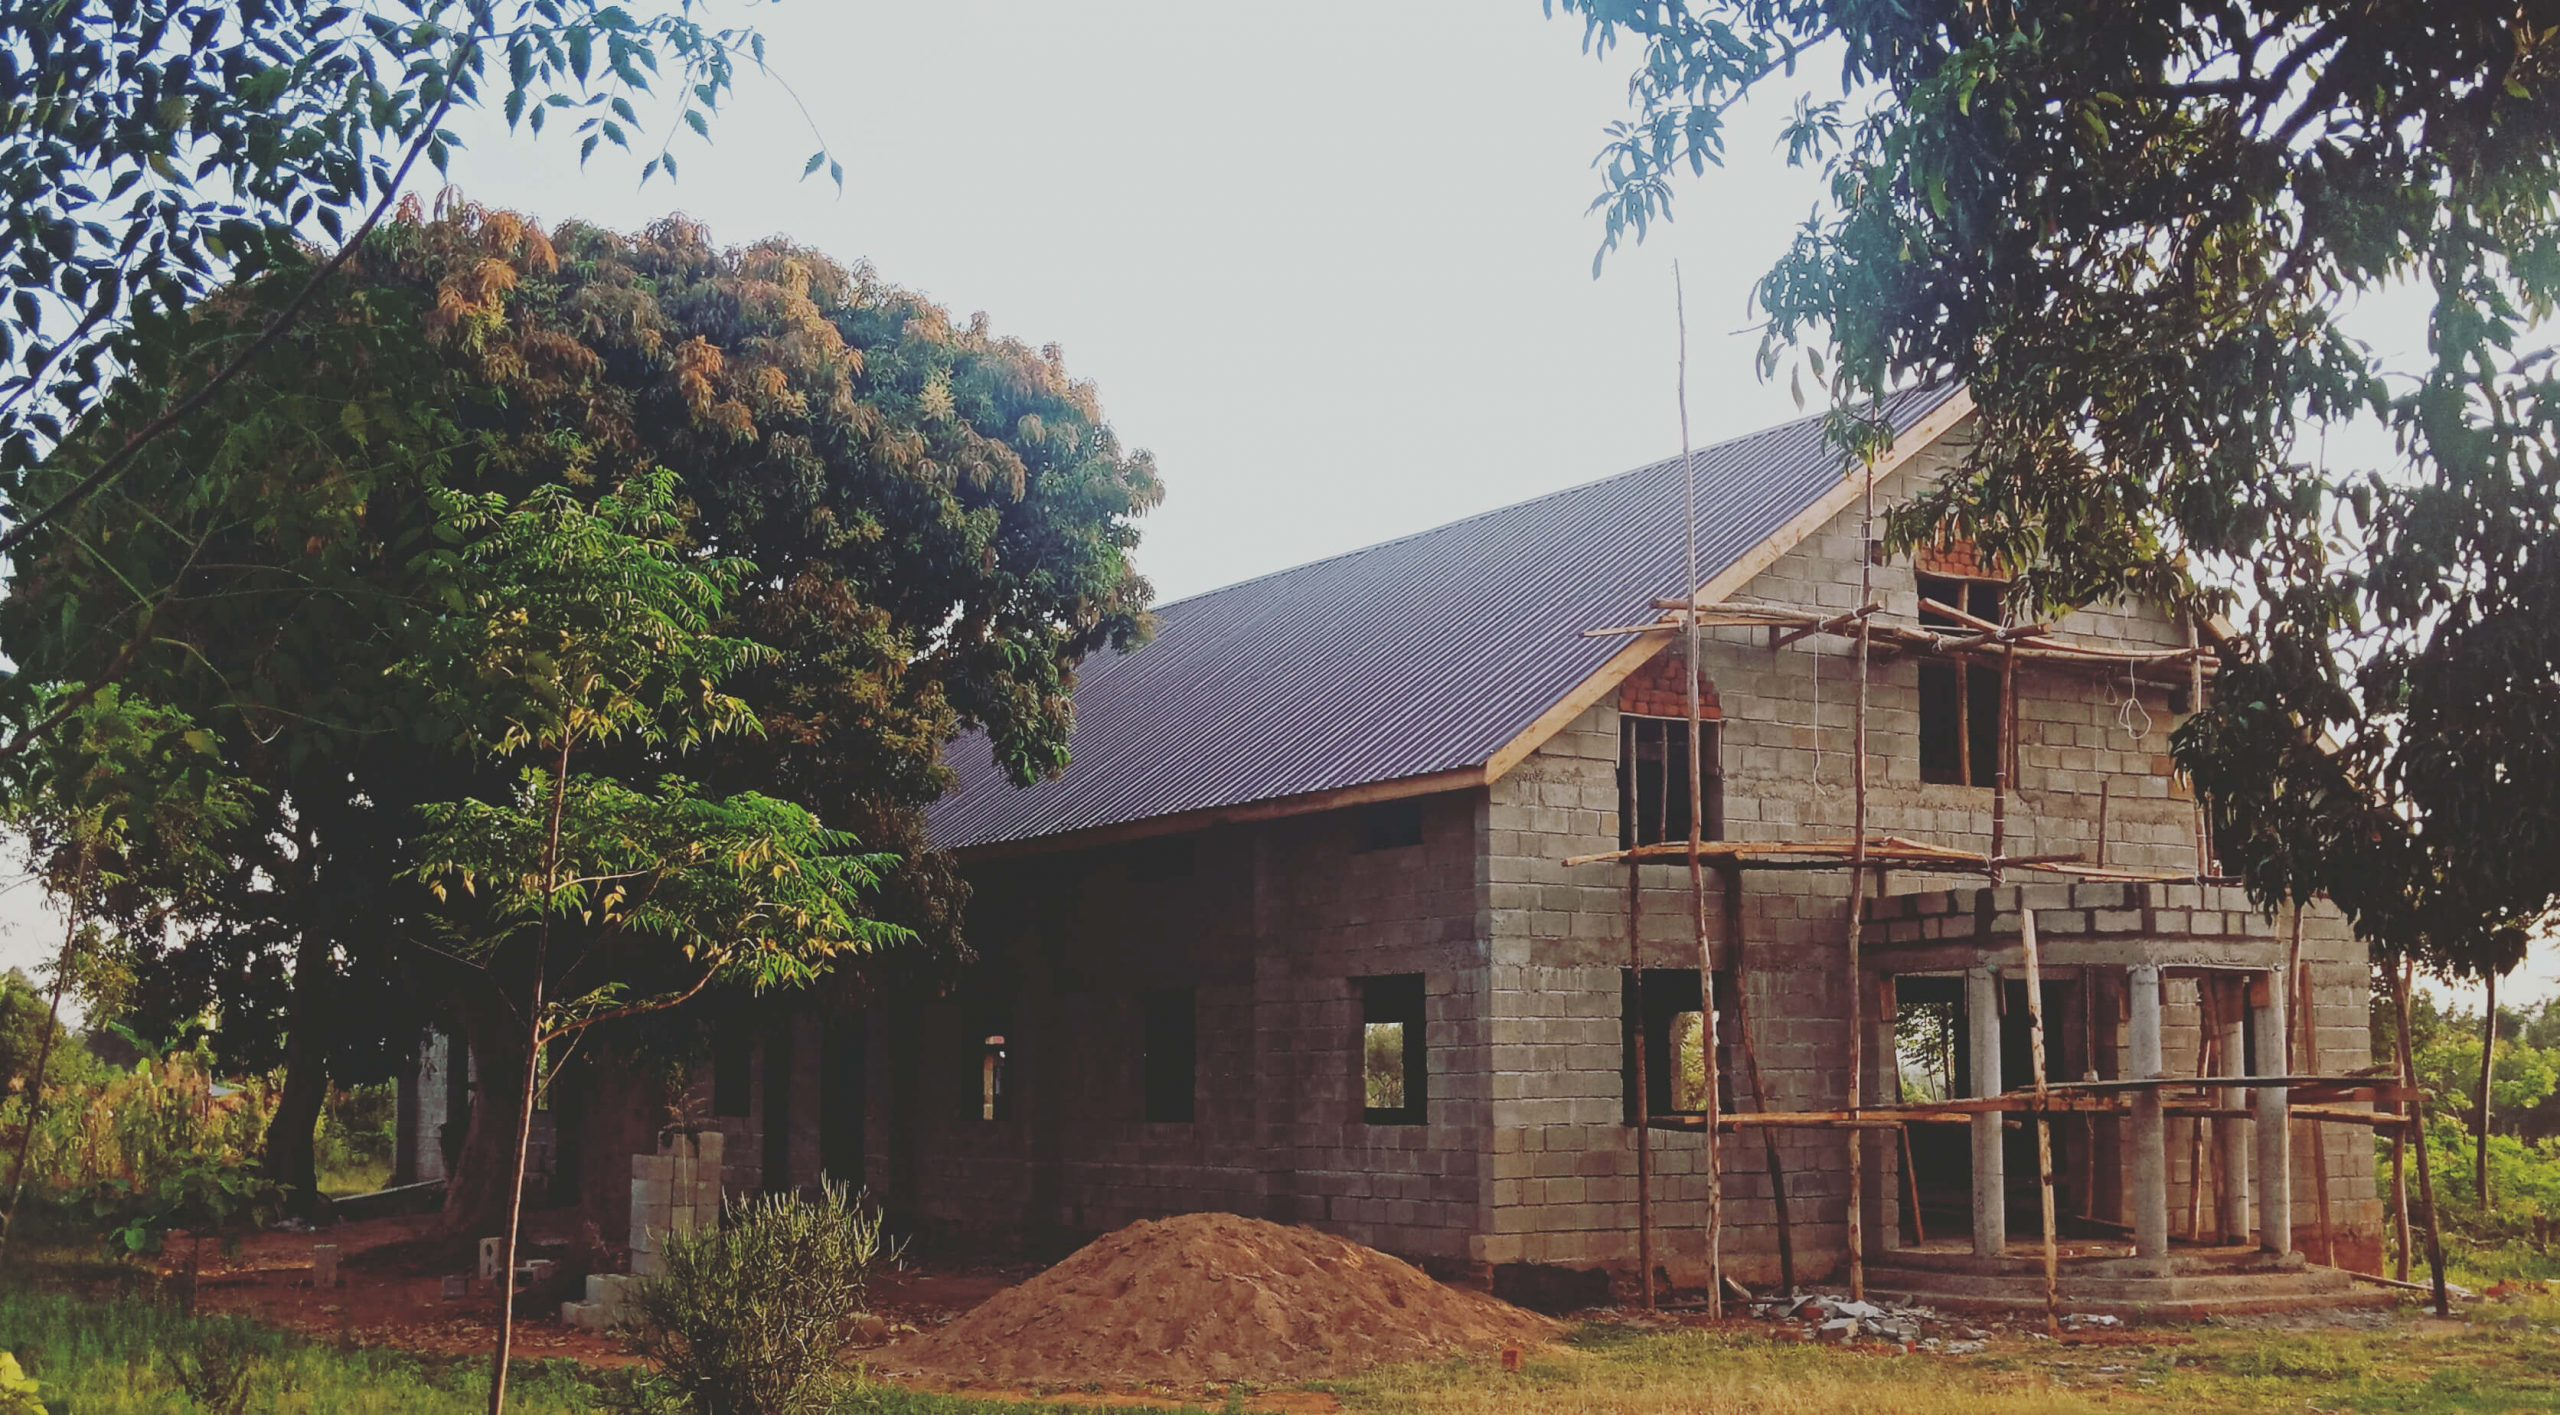 Uganda - Roofing works are now in progress!